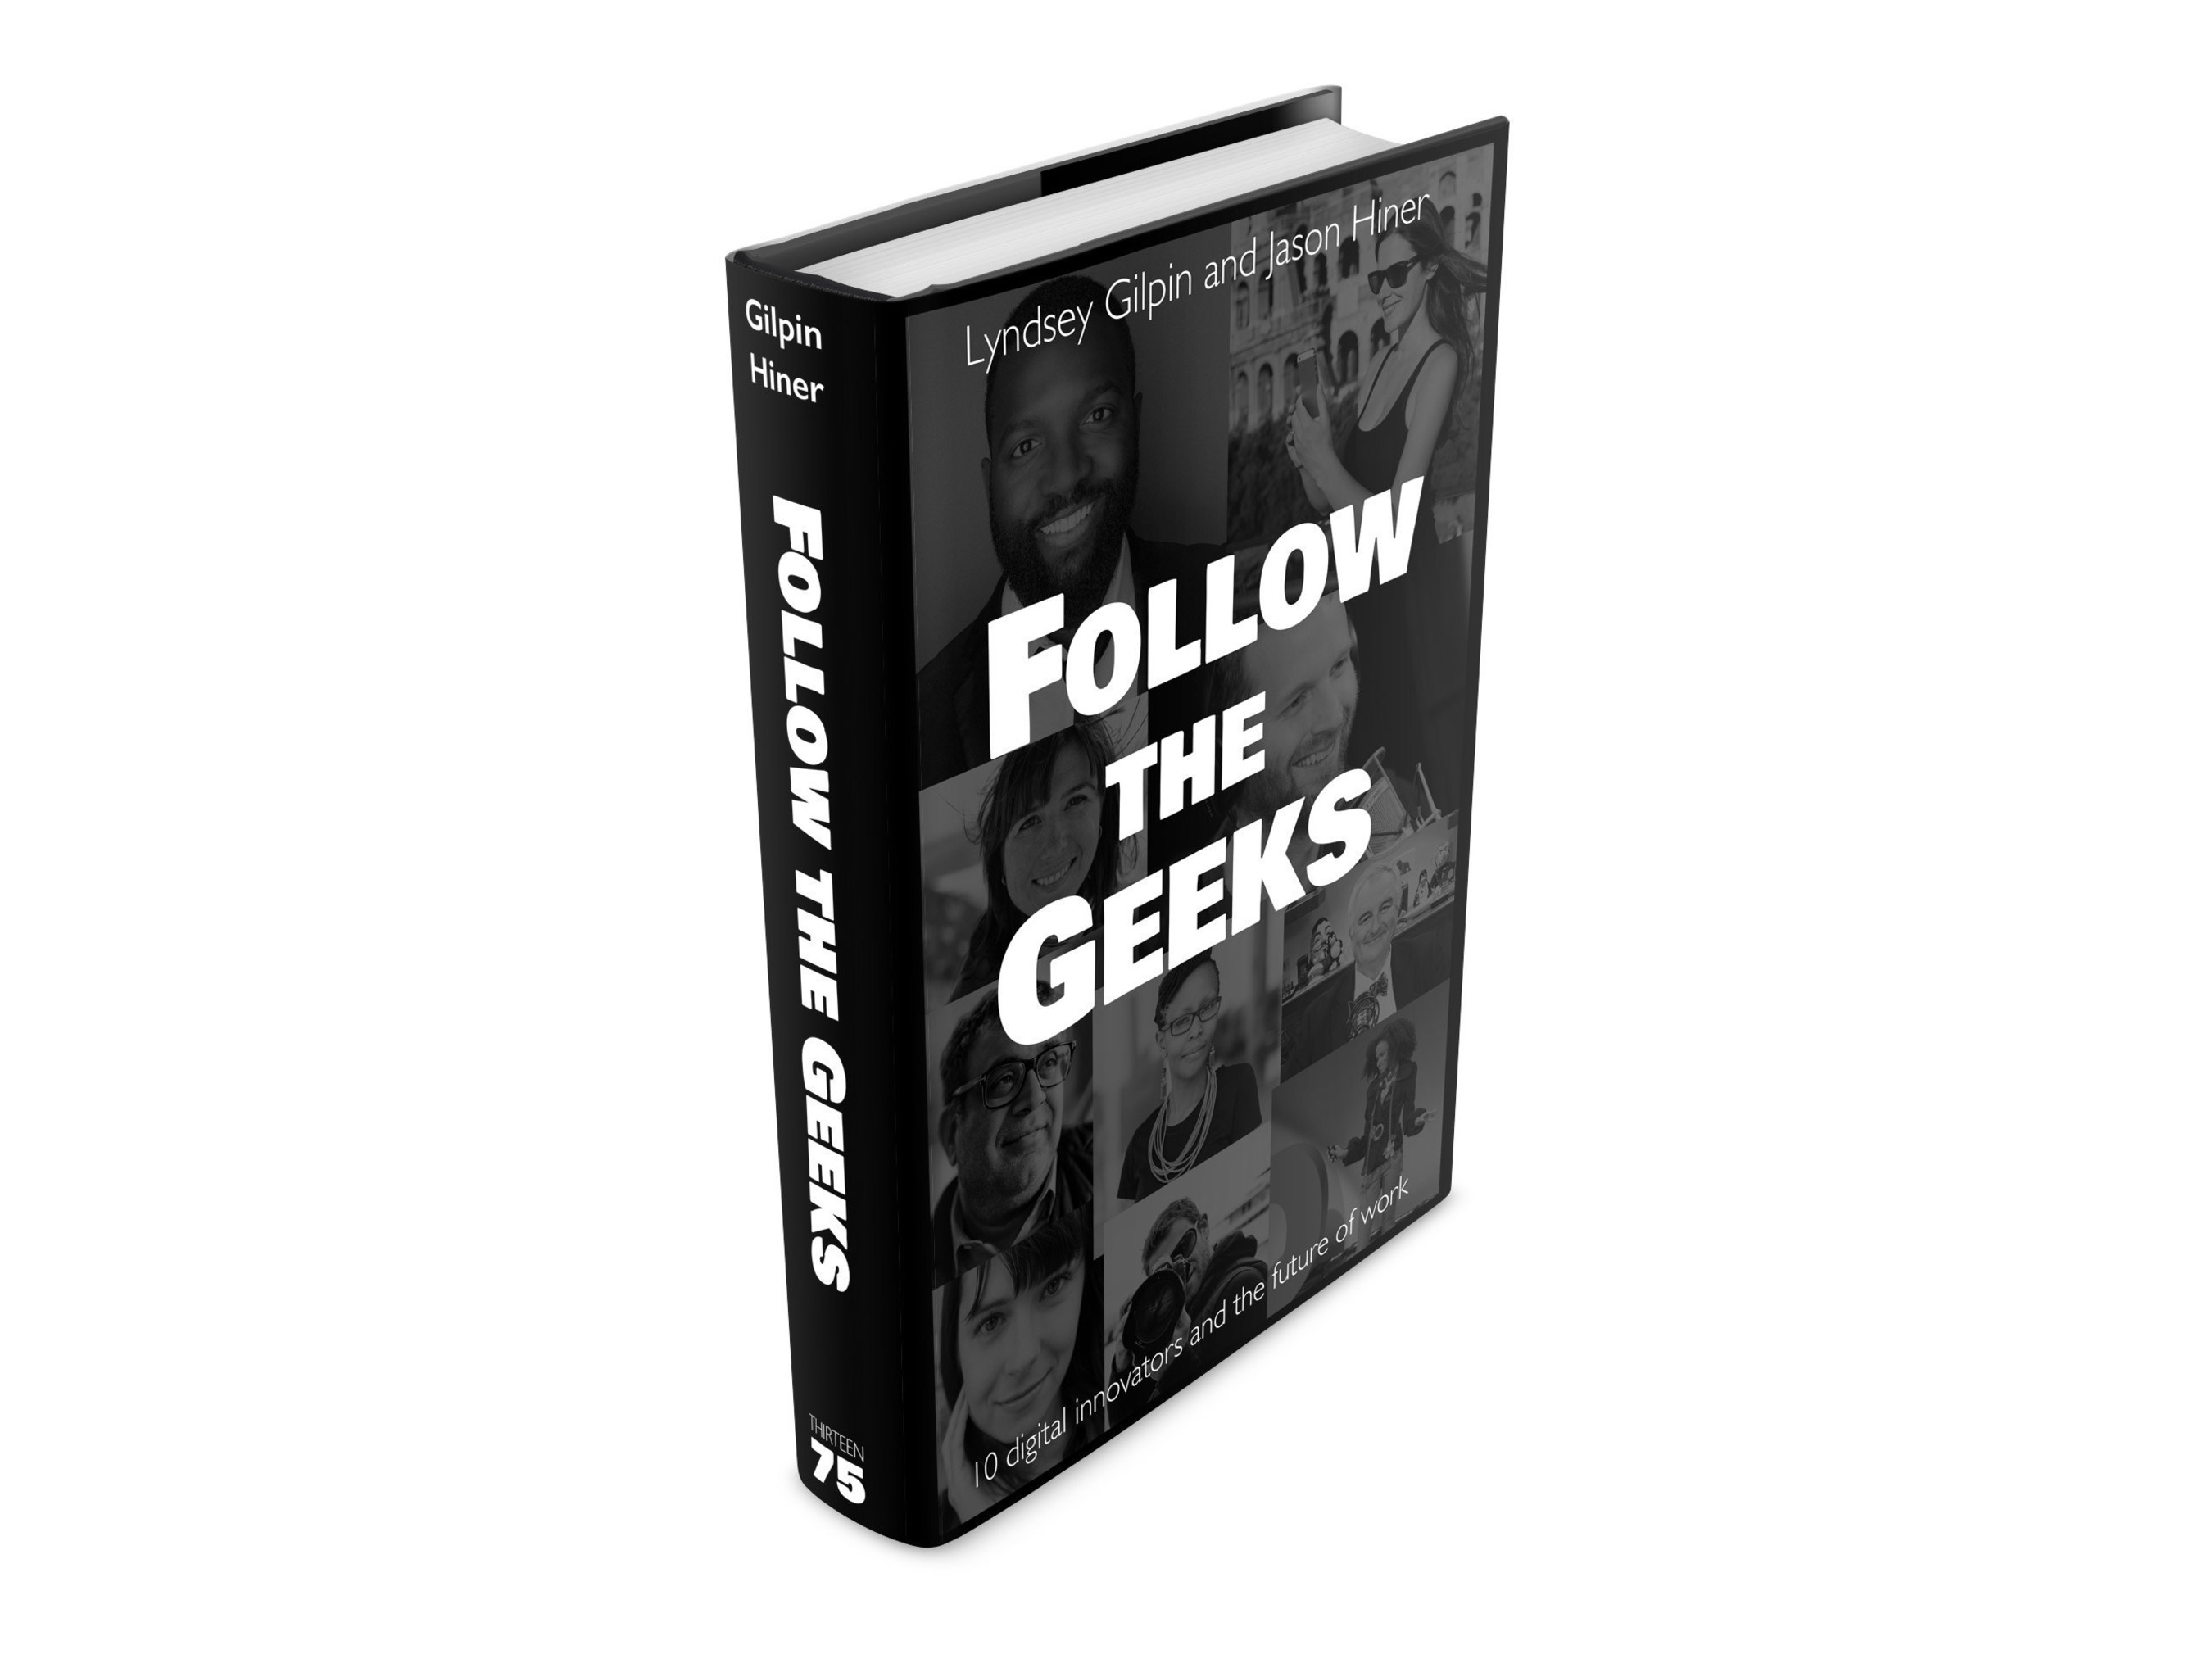 Future of work will be much more entrepreneurial, says new book Follow the Geeks